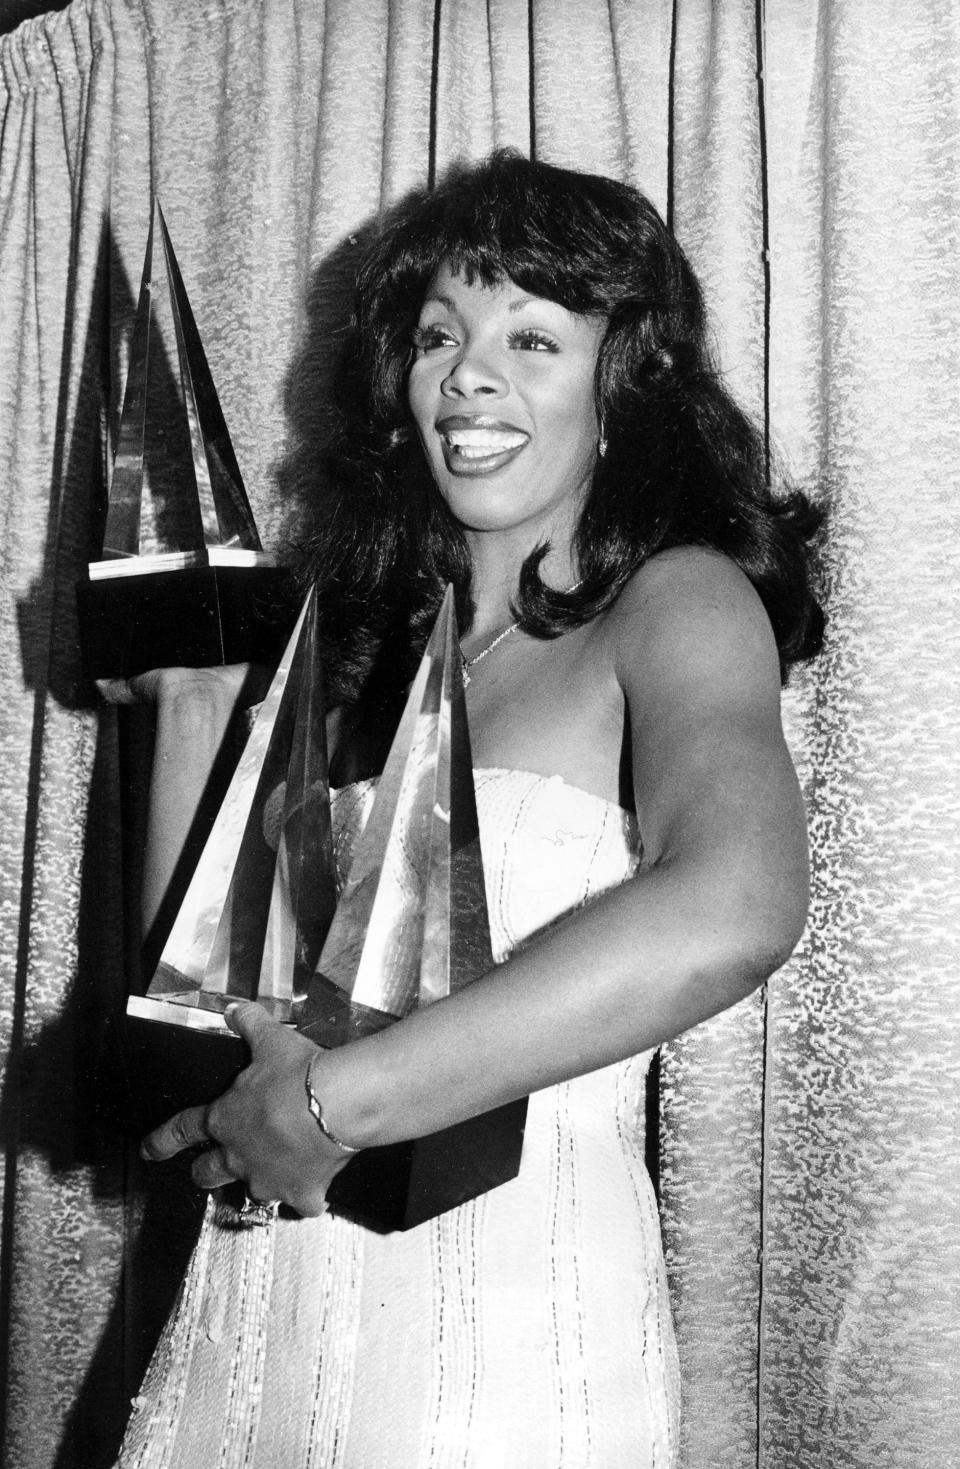 """FILE - In this Jan. 12, 1979 file photo, singer Donna Summer poses with three awards she won at the American Music Awards in Los Angeles, Calif. Summer, the Queen of Disco who ruled the dance floors with anthems like """"Last Dance,"""" """"Love to Love You Baby"""" and """"Bad Girl,"""" has died. Her family announced her death in a statement Thursday, May 17, 2012. She was 63. (AP Photo/Nick Ut, File)"""